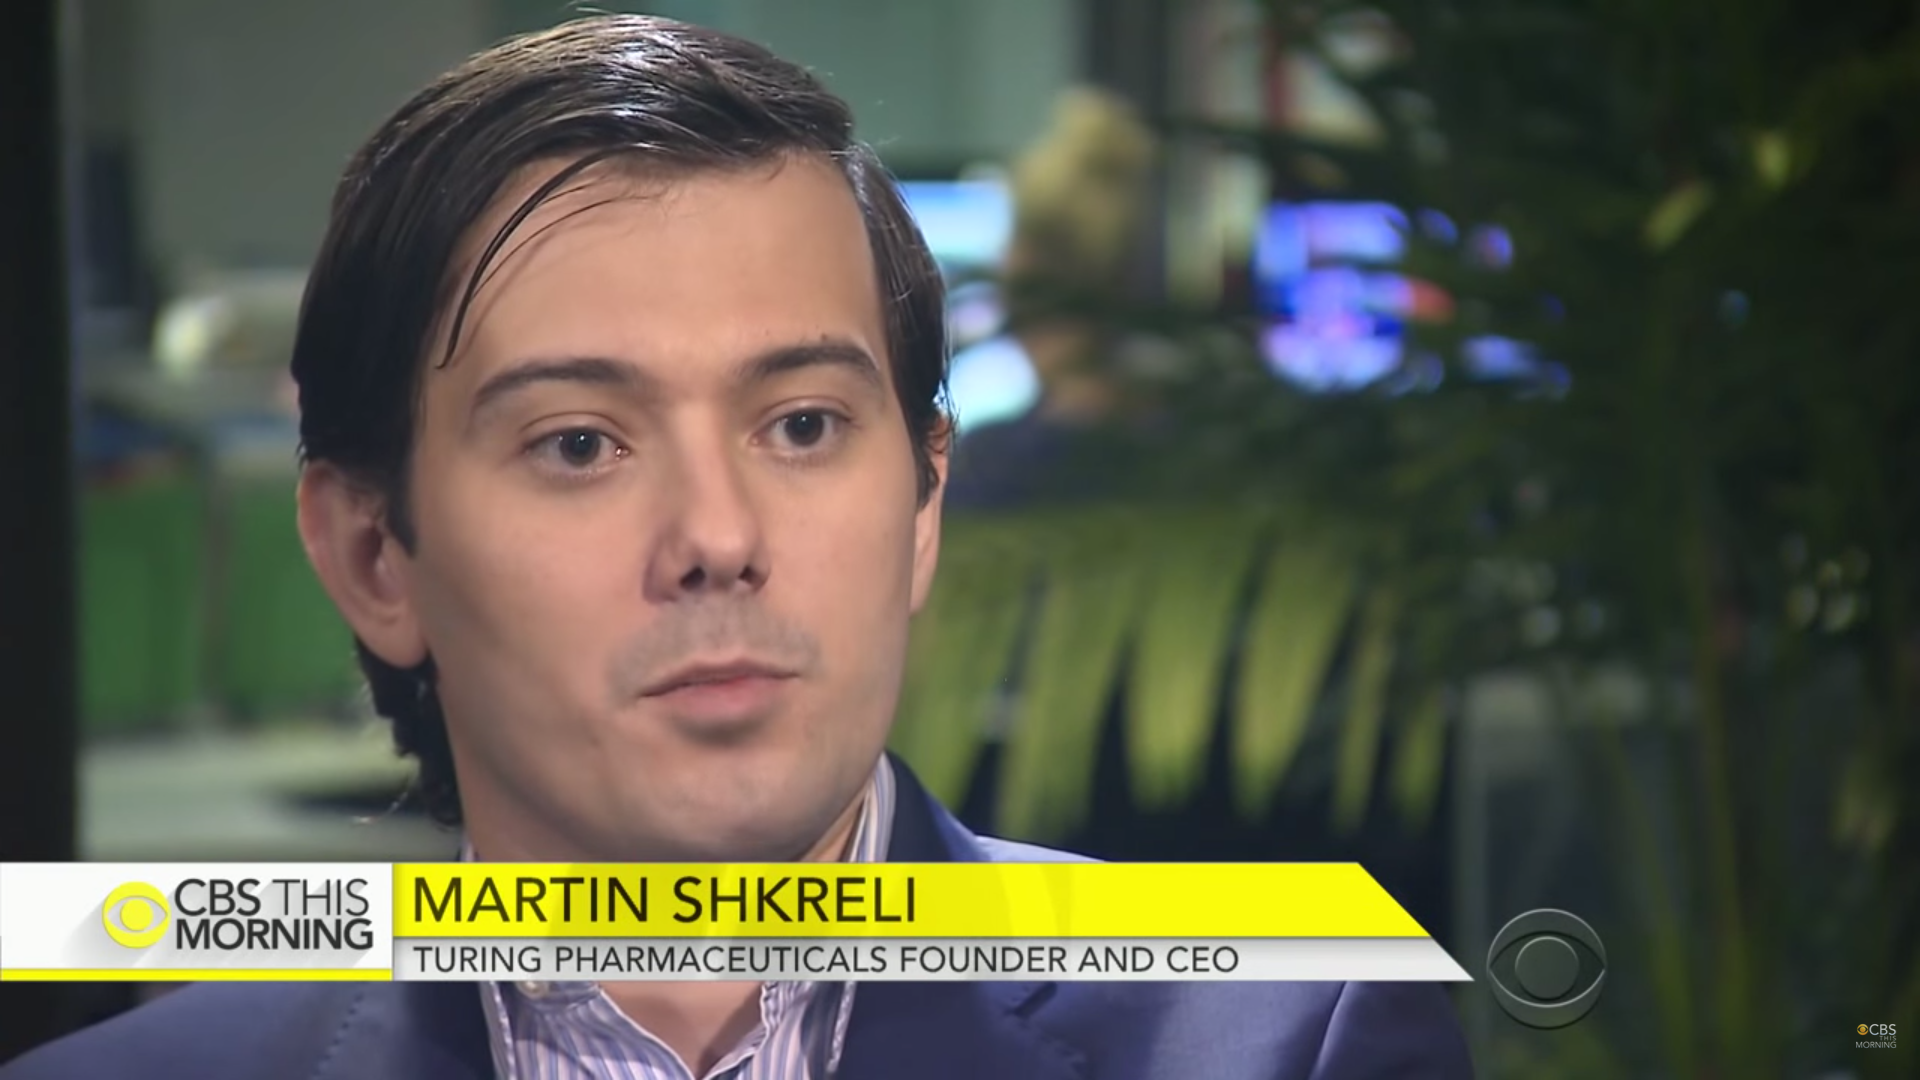 DCI Group aids Turing amid drug price, Shkreli controversies